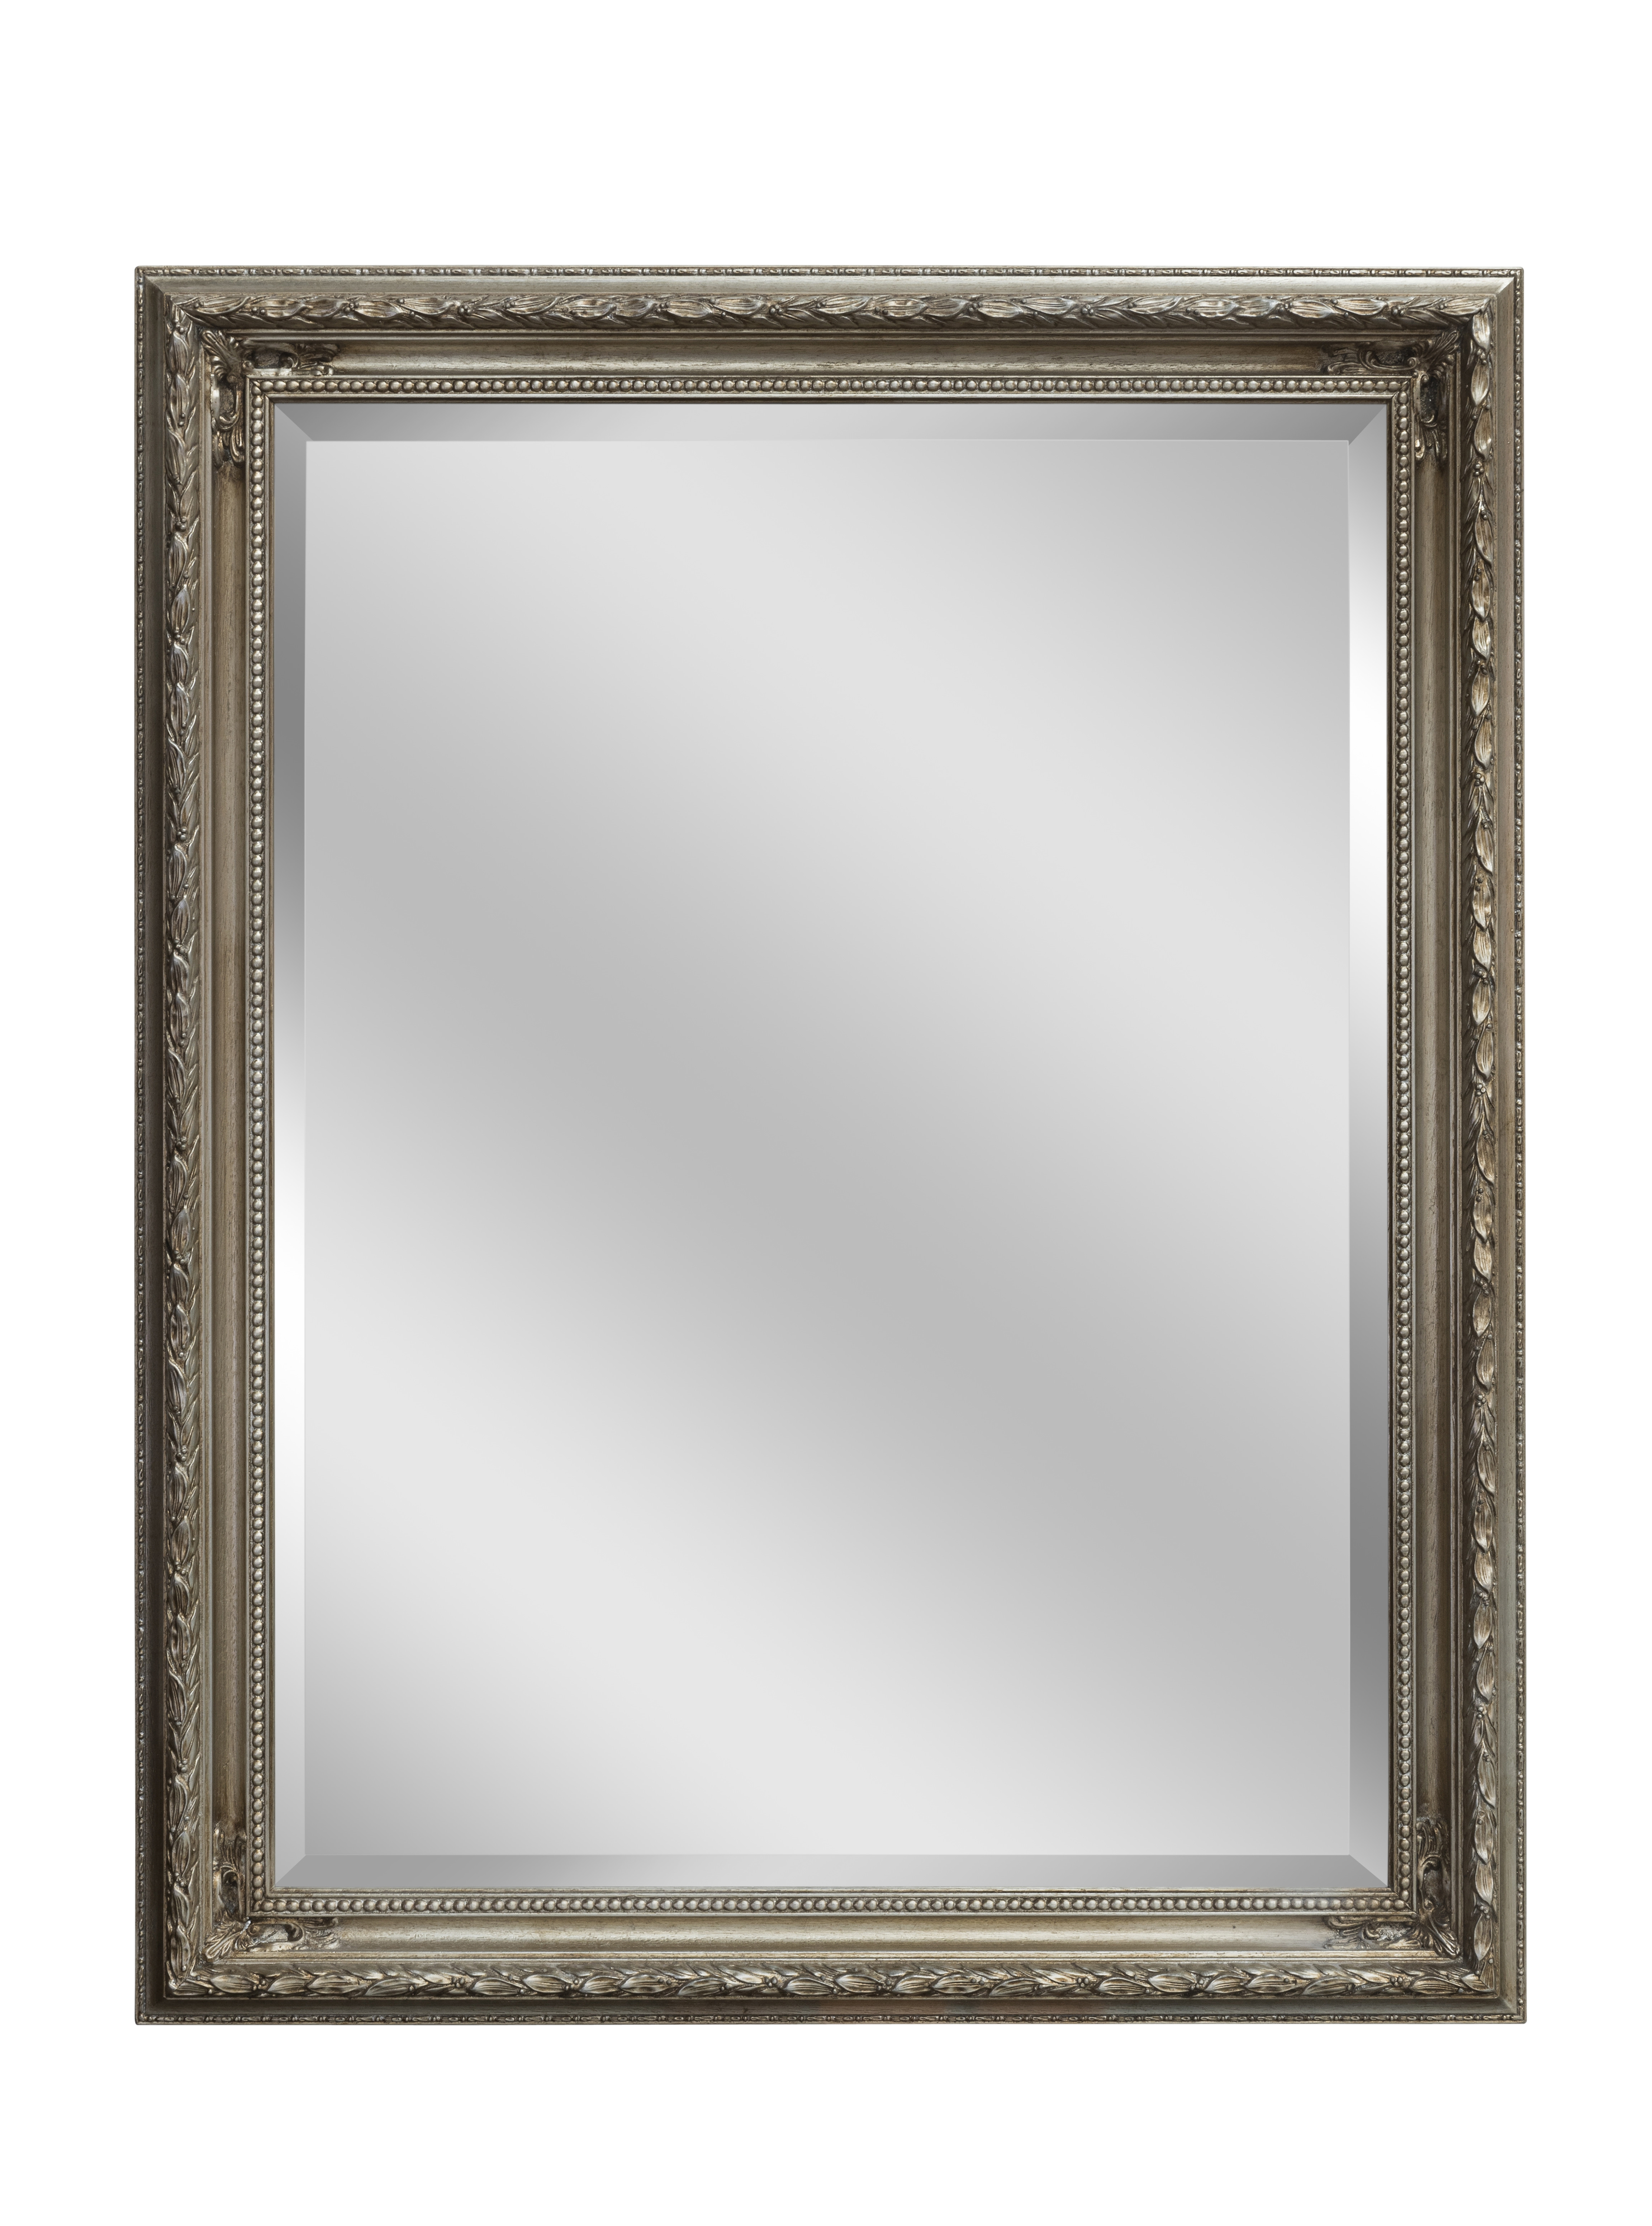 Silver Baroque Mirror Large Mirrors For Sale Panfili Mirrors Regarding Silver Baroque Mirror (Image 13 of 15)